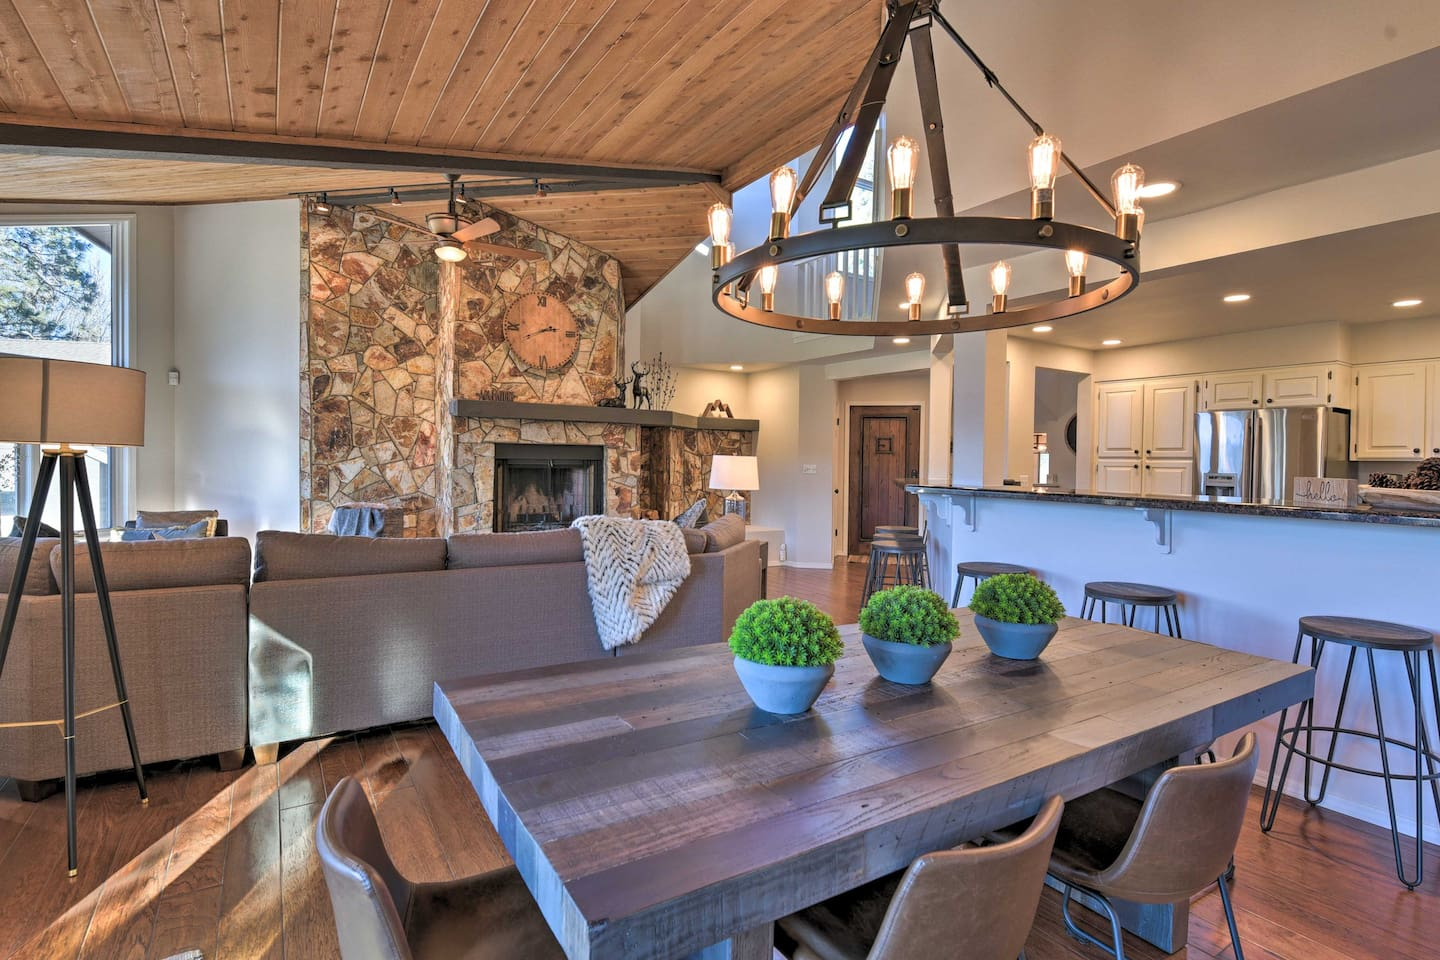 A luxurious & cozy retreat awaits in this fully remodeled vacation rental cabin.